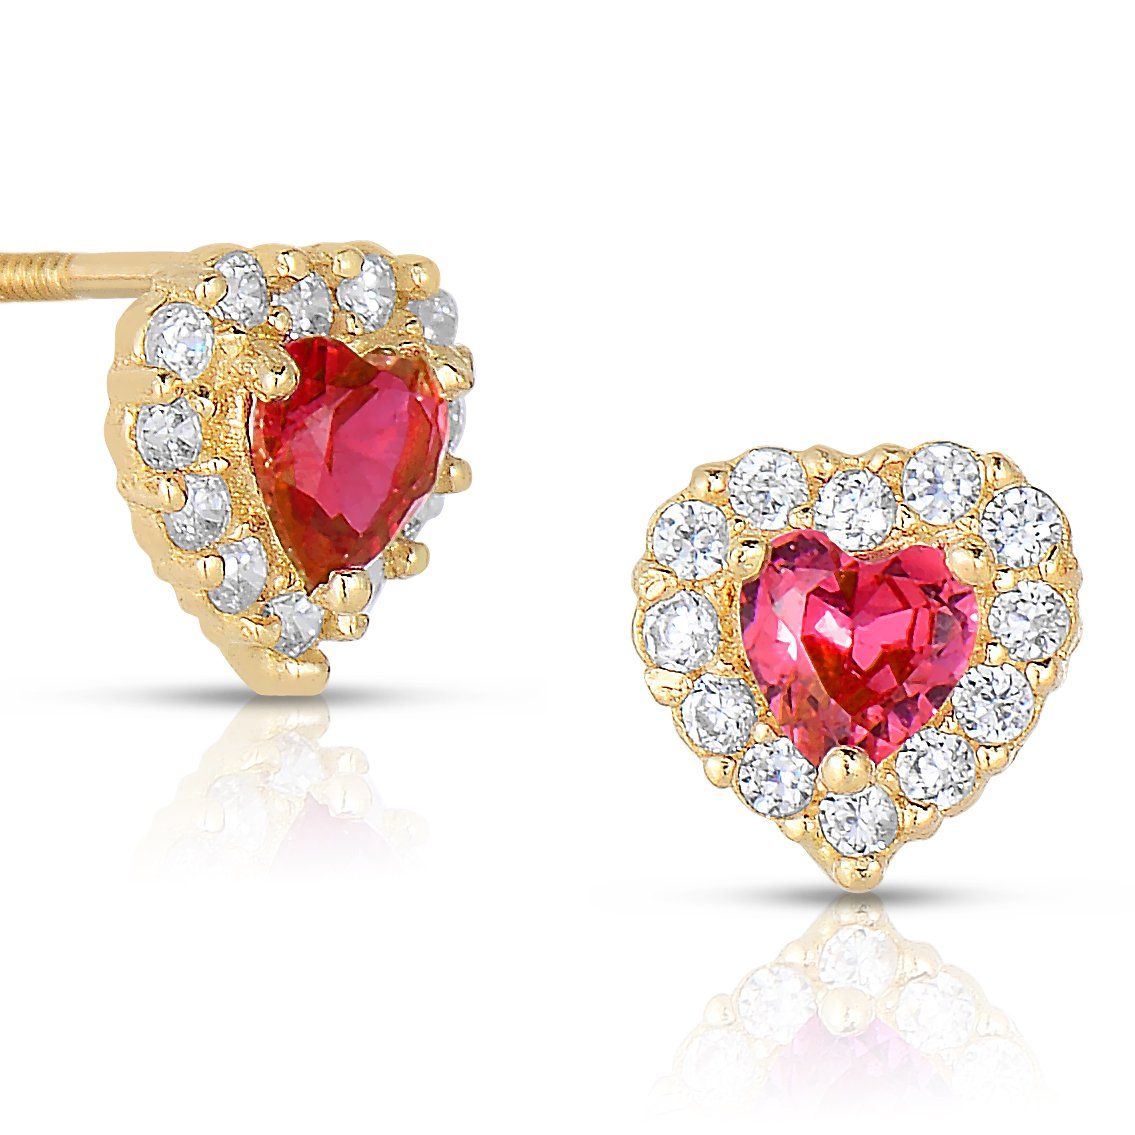 Tiny 14k Yellow Gold Heart Stud Earrings in Cubic Zirconia CZ Birth Month with Secure Screw Backs (Jul) by Art and Molly (Image #1)